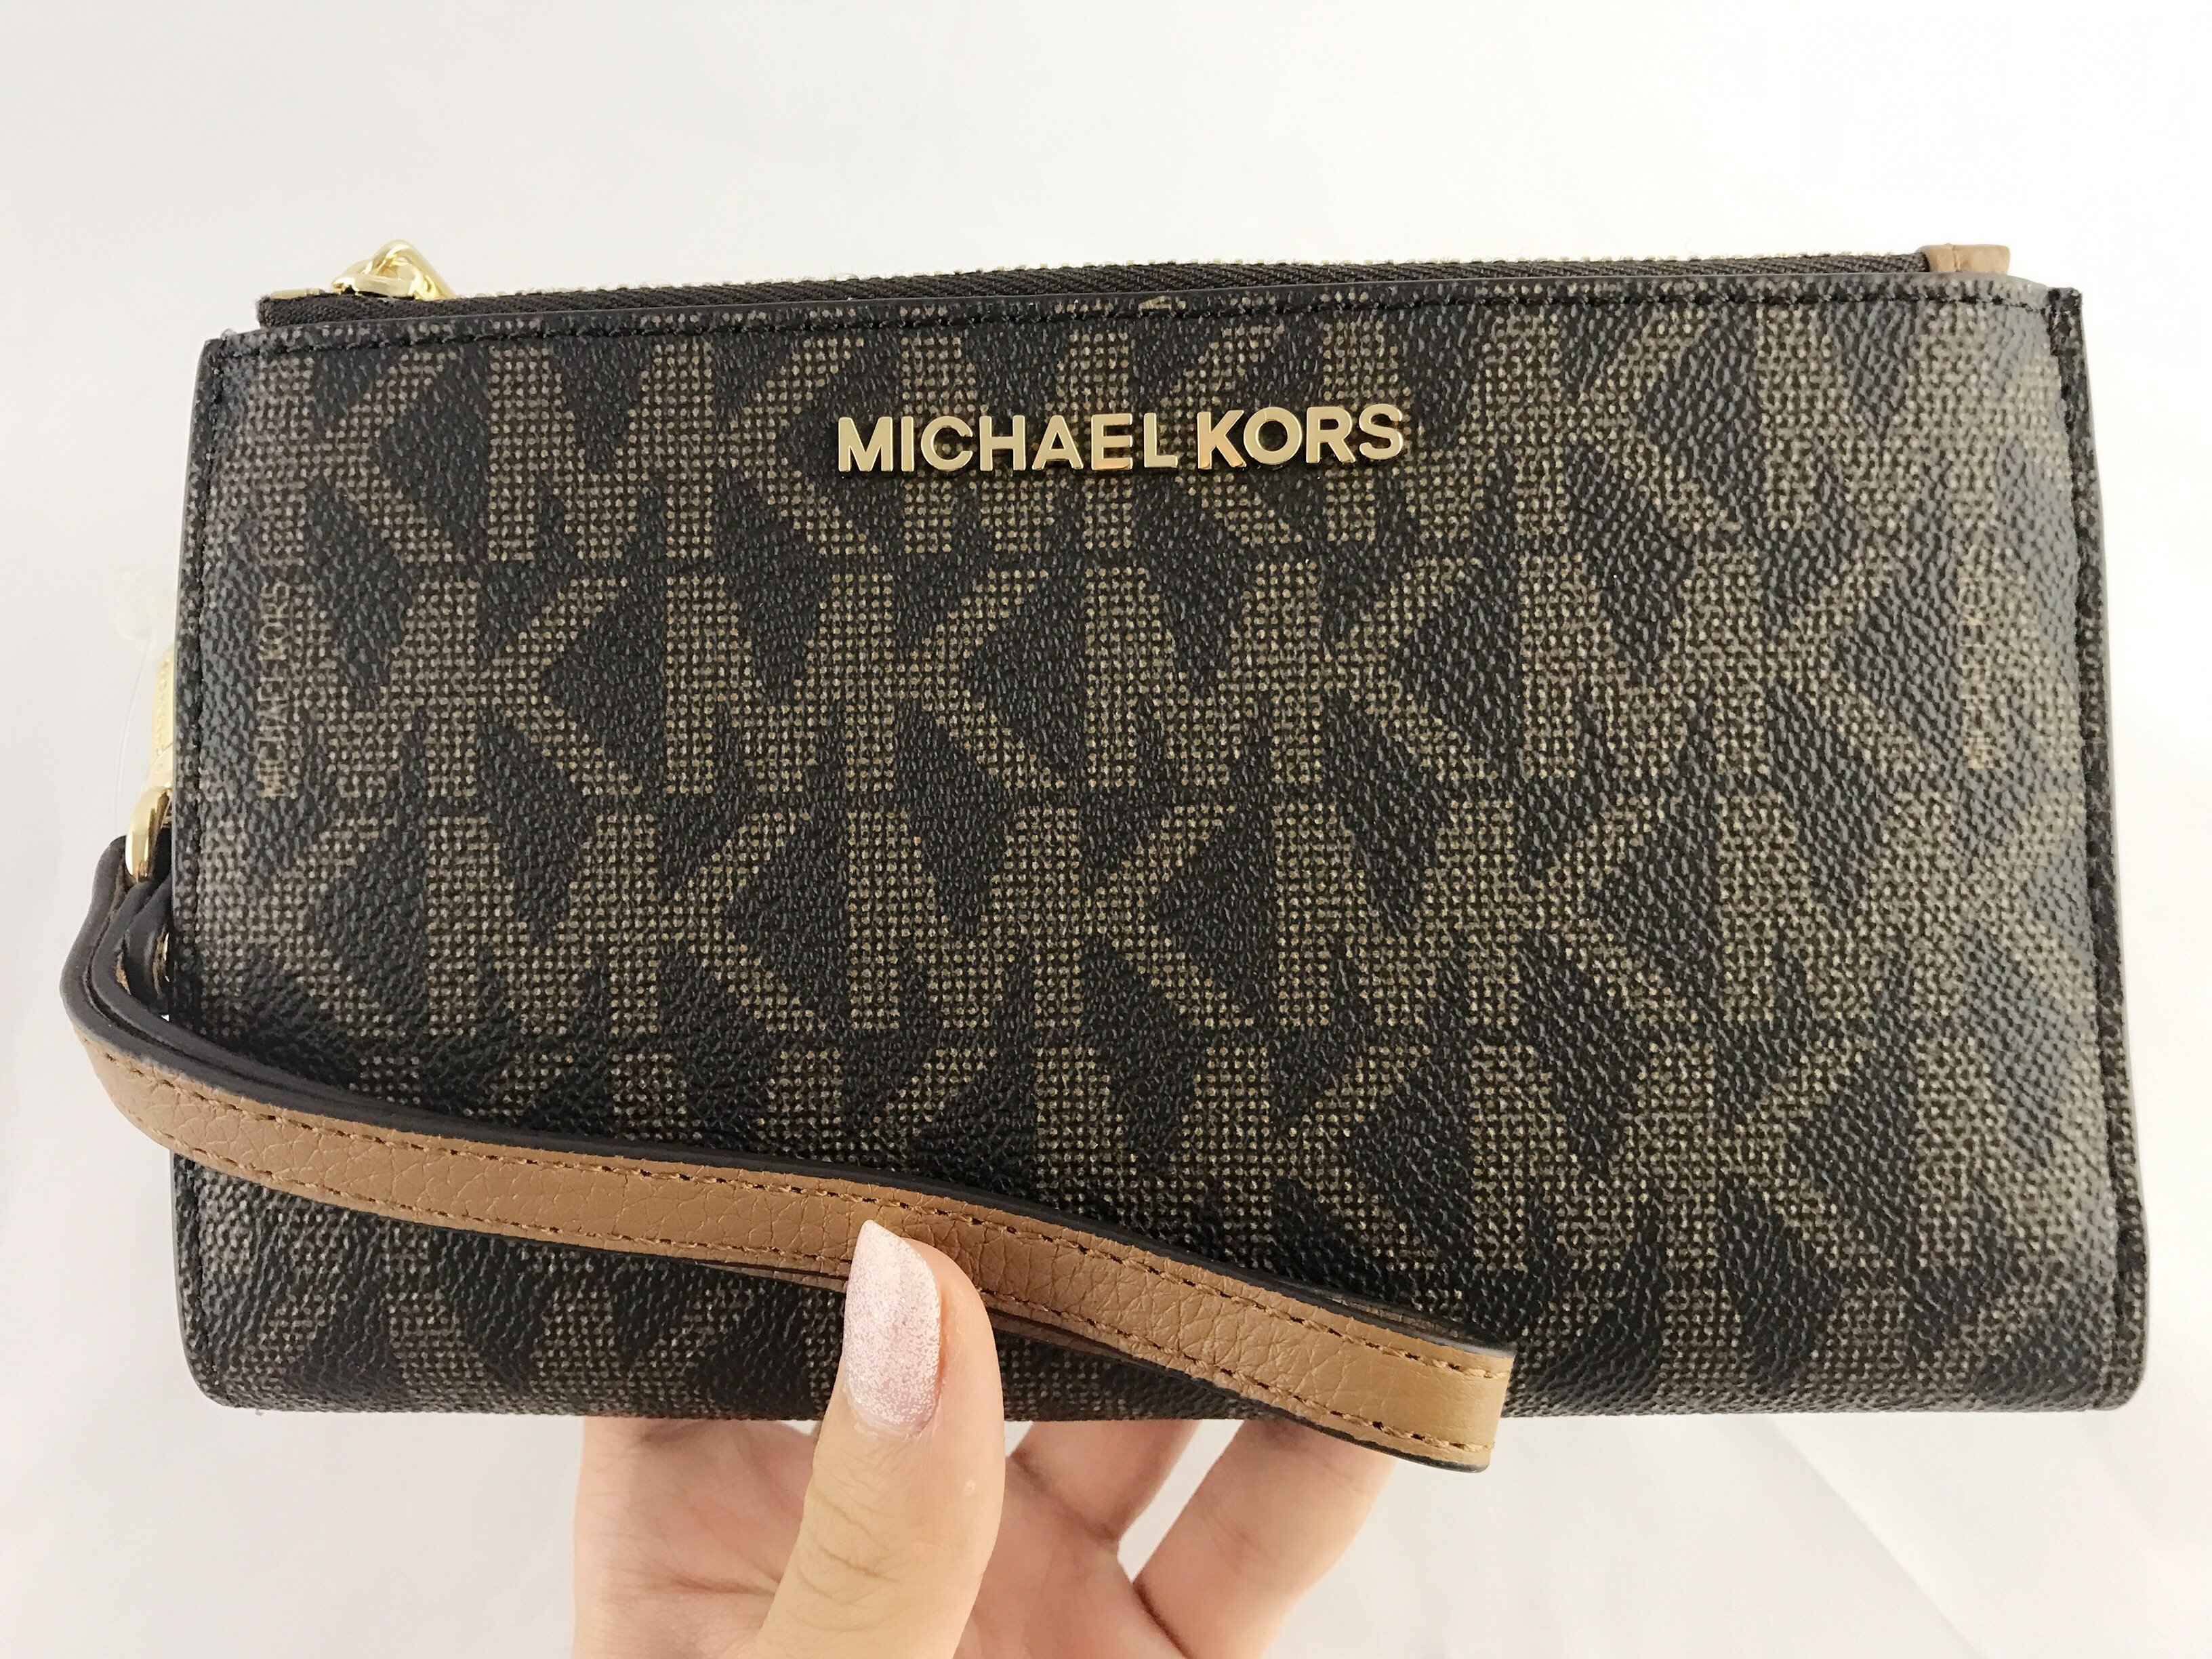 Buy Michael Kors Purses Ebay Uk Limit Discounts 45 Off Golceram Com